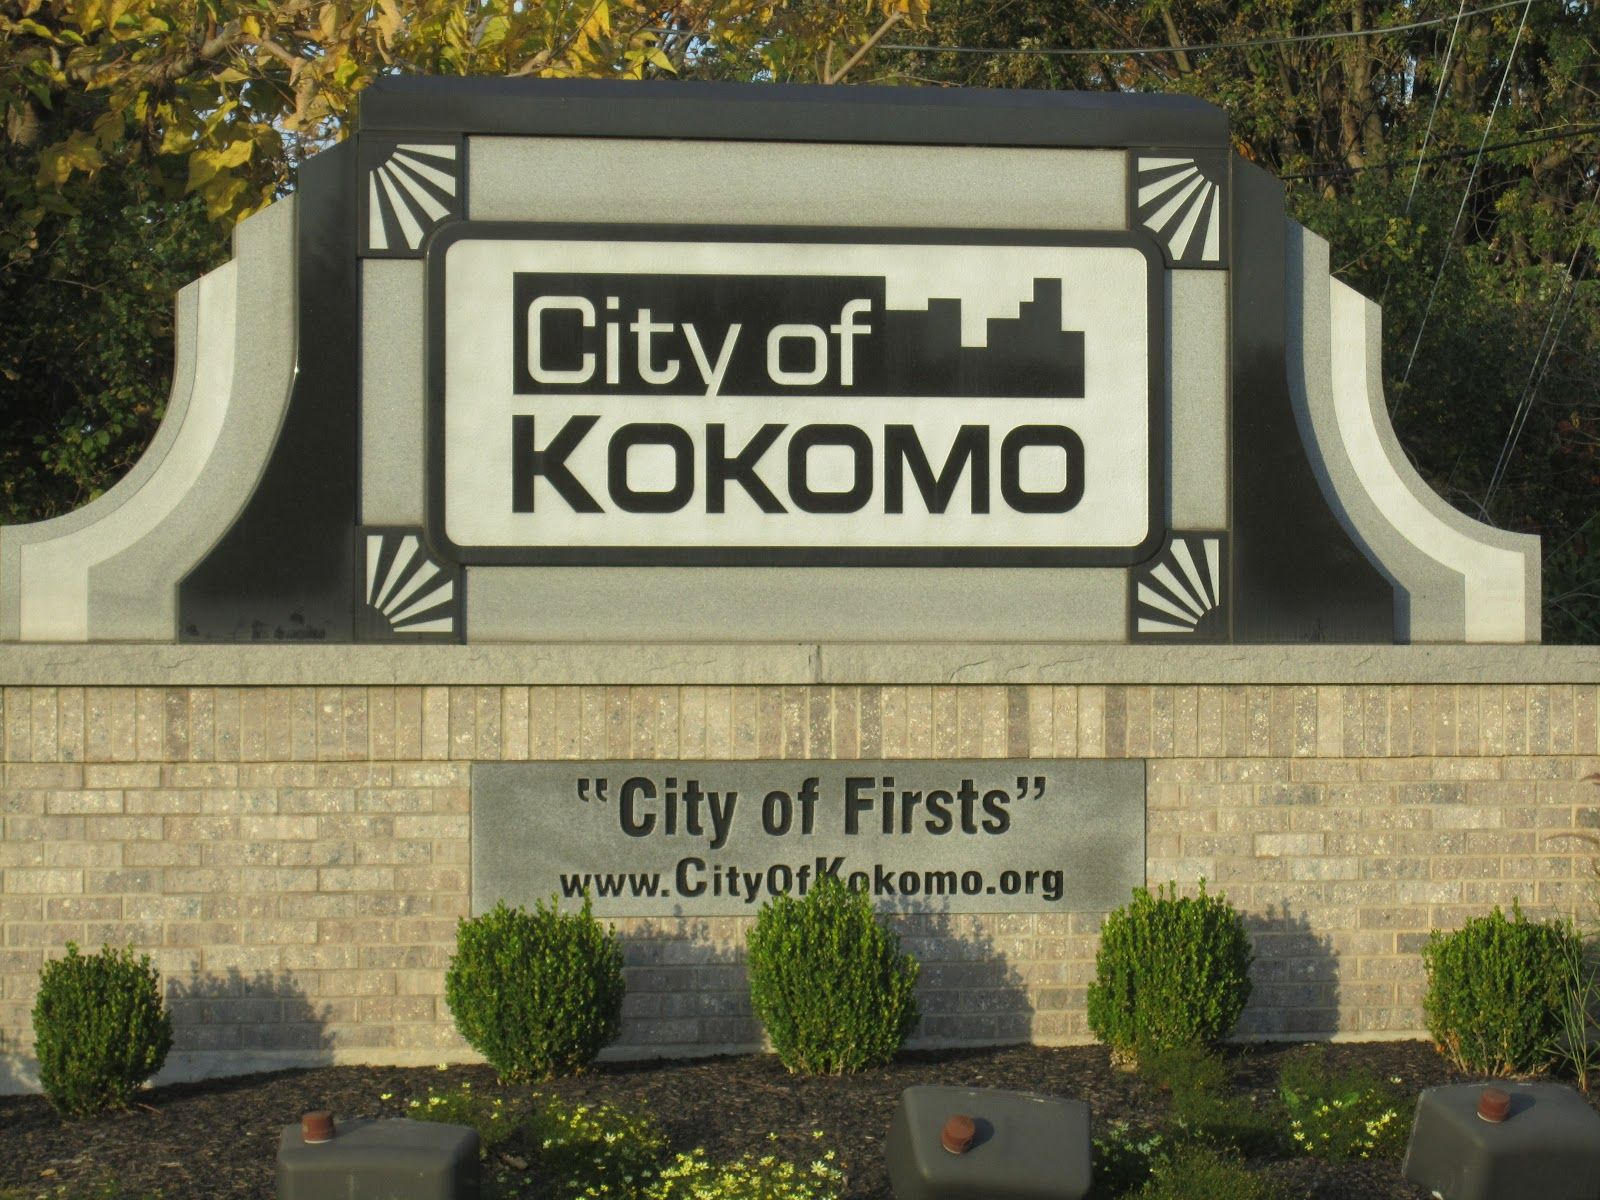 1000+ images about Kokomo Indiana on Pinterest | Katie o'malley ...